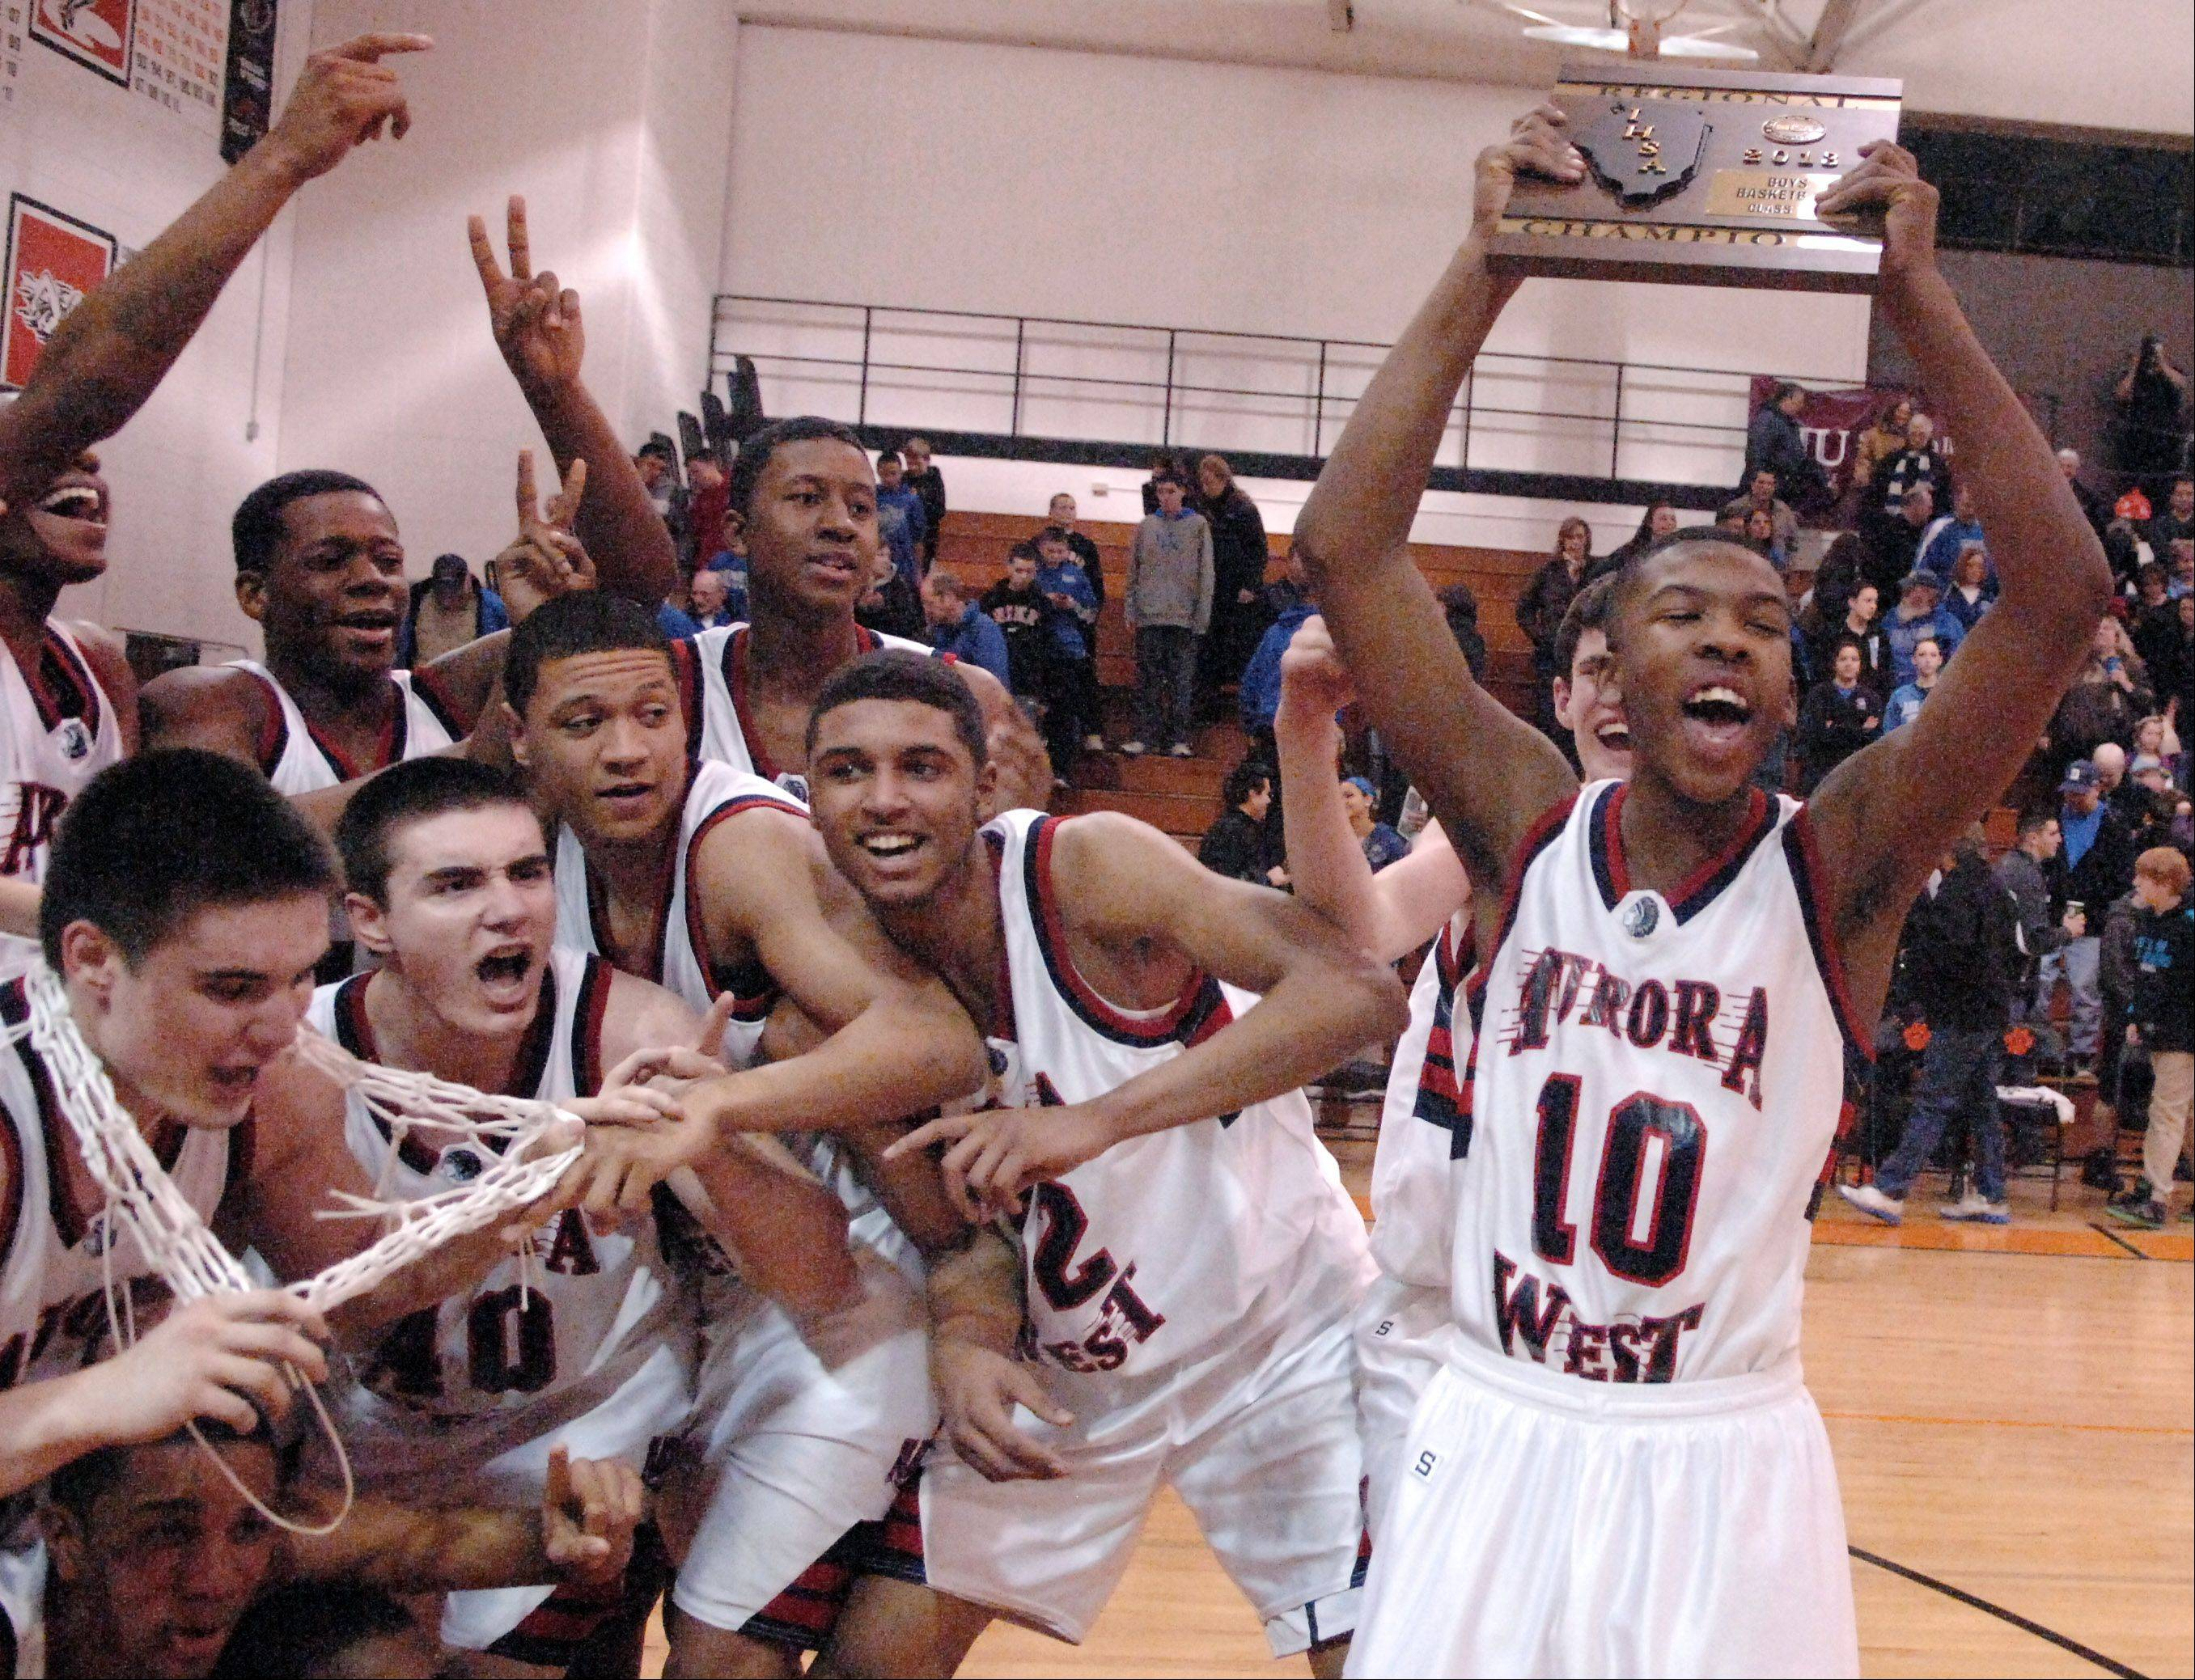 West Aurora's Jontrell Walker (10) is the first to get his hands on the regional championship plaque as his teammates post for pictures following their win over Geneva during Friday's regional final in Wheaton.